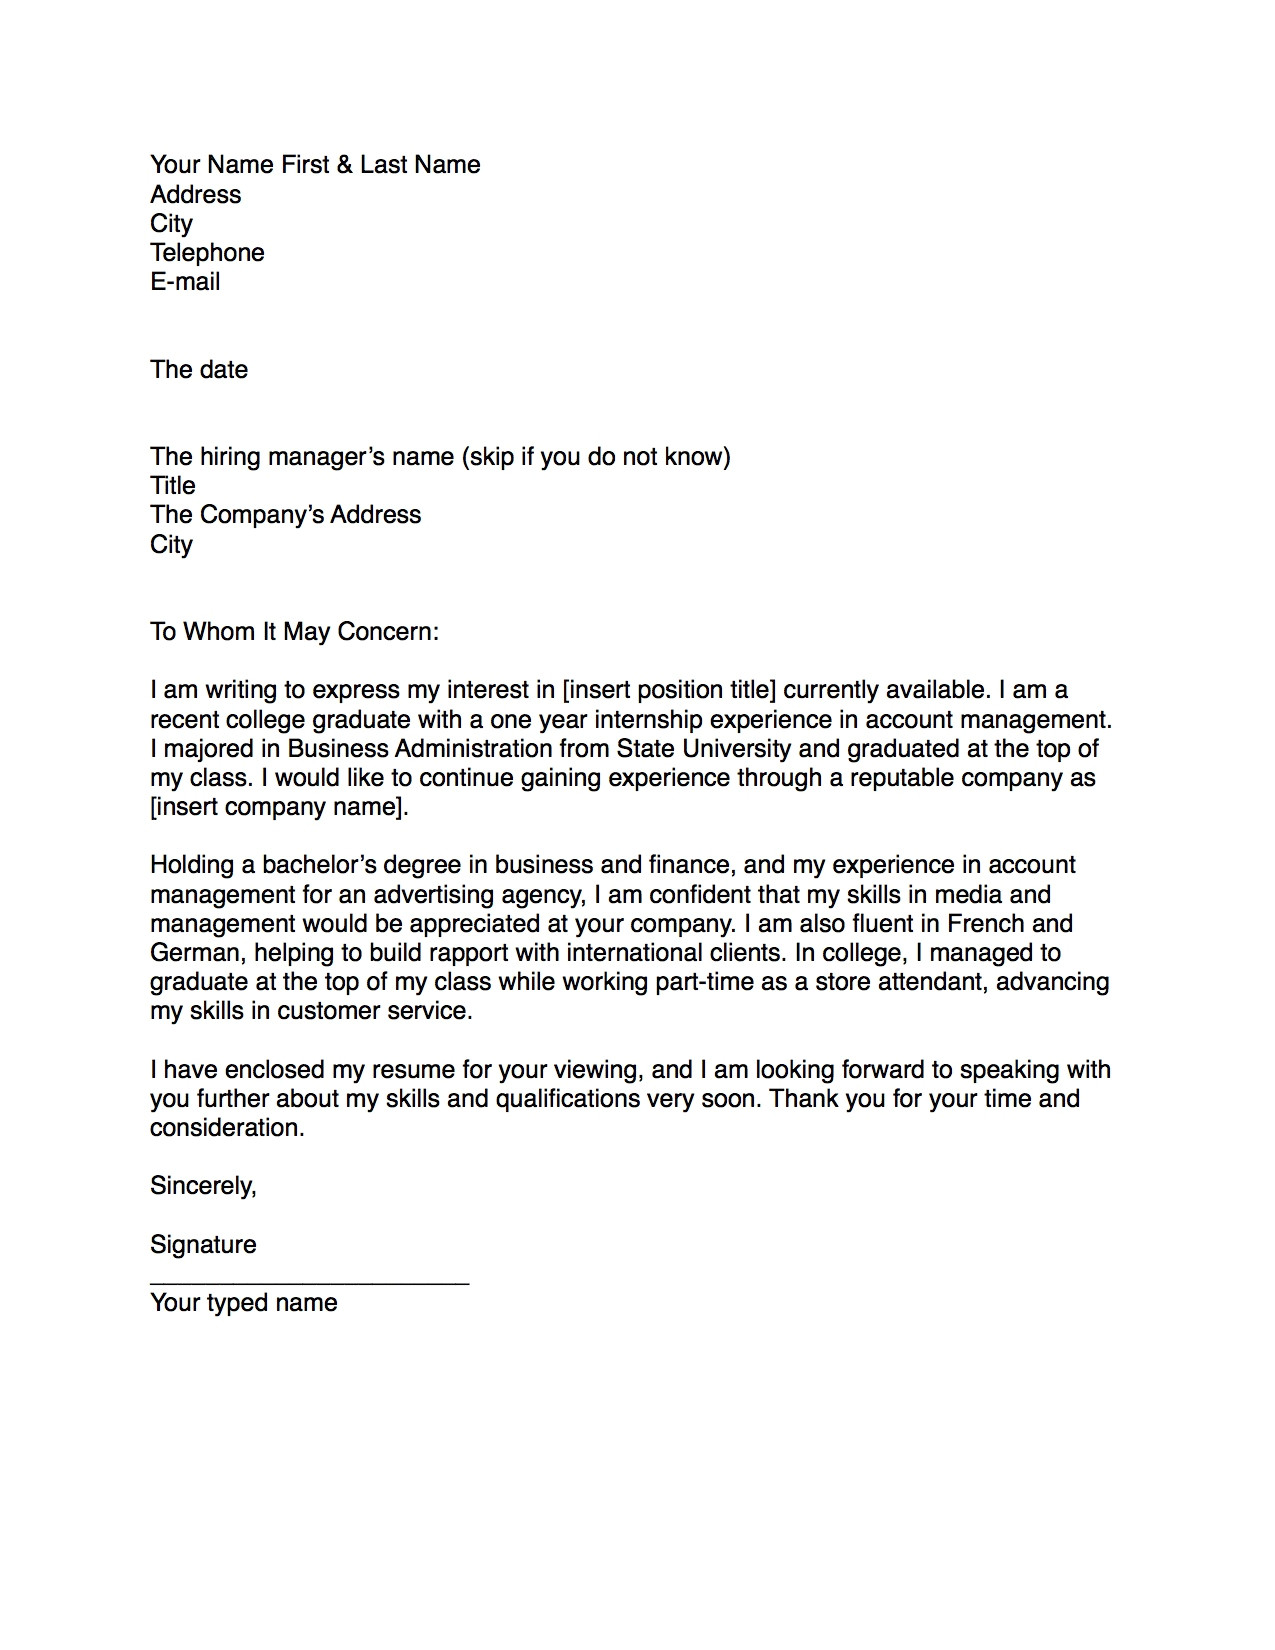 steps on how to write a cover letter